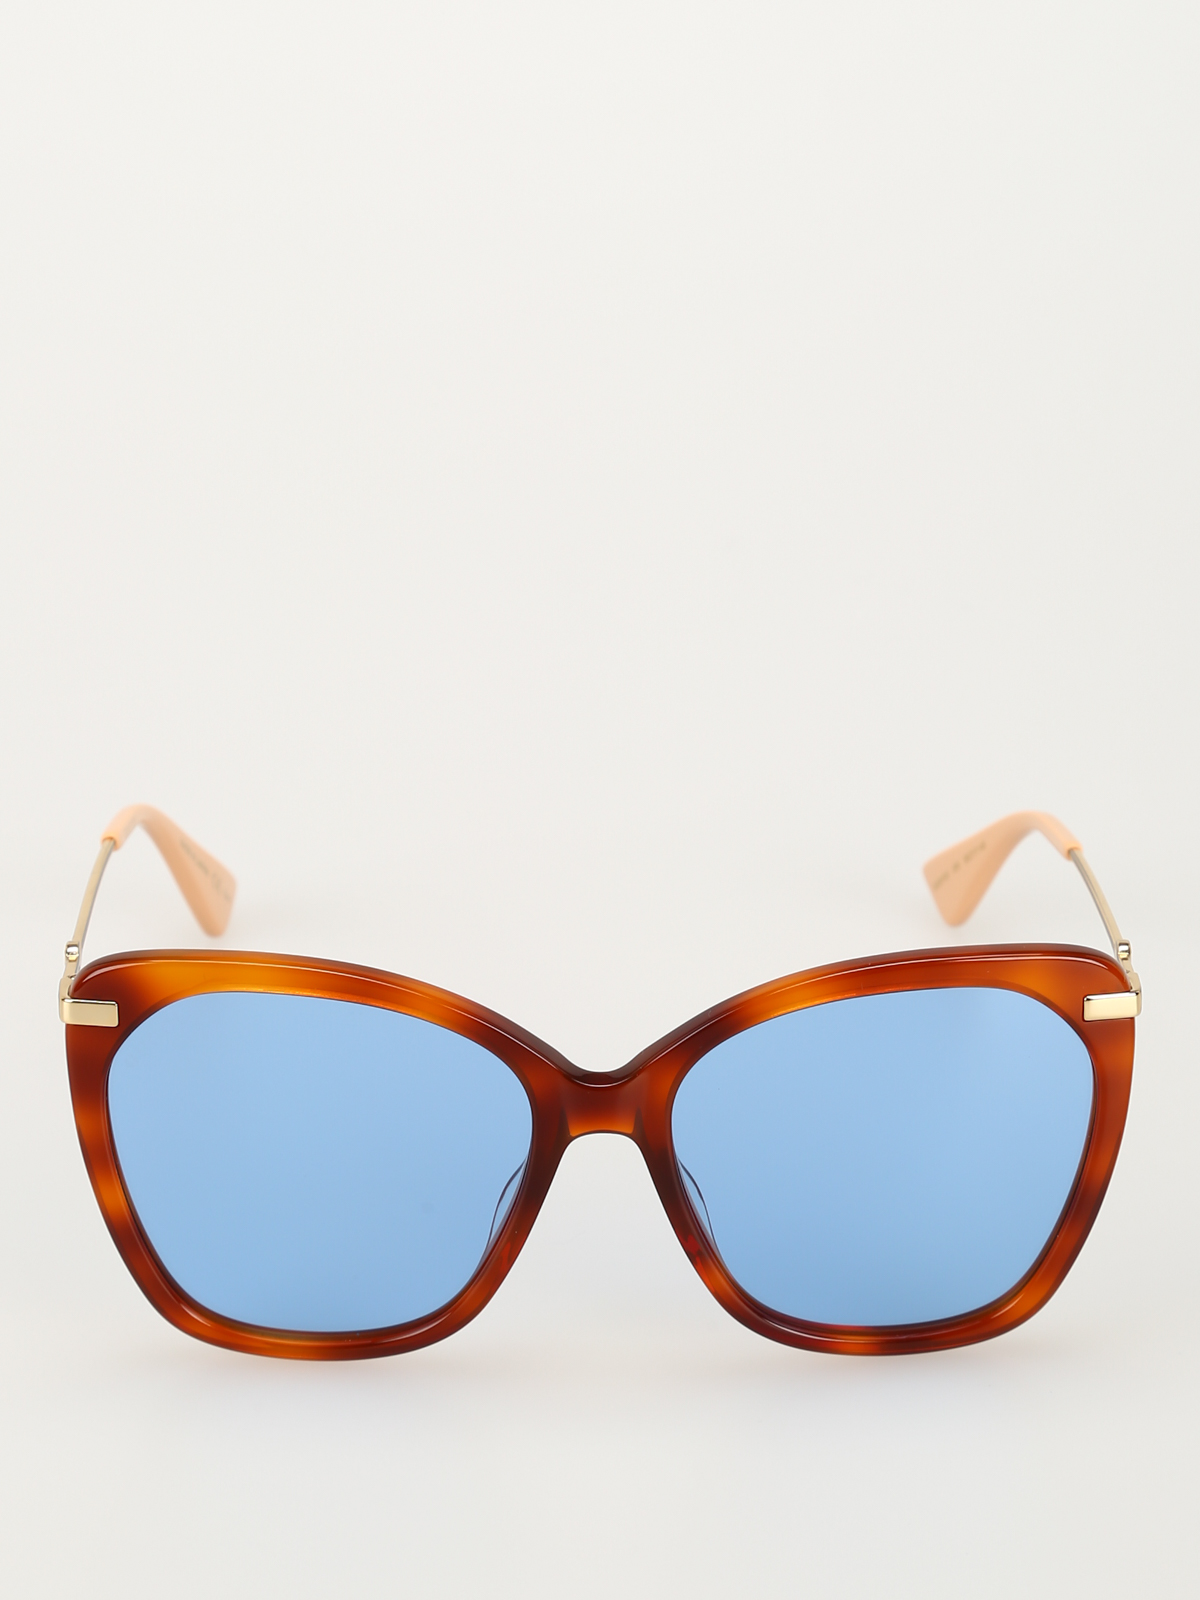 ddaee8bdea04 Gucci - Blue lens havana over sunglasses - sunglasses - GG0510S005